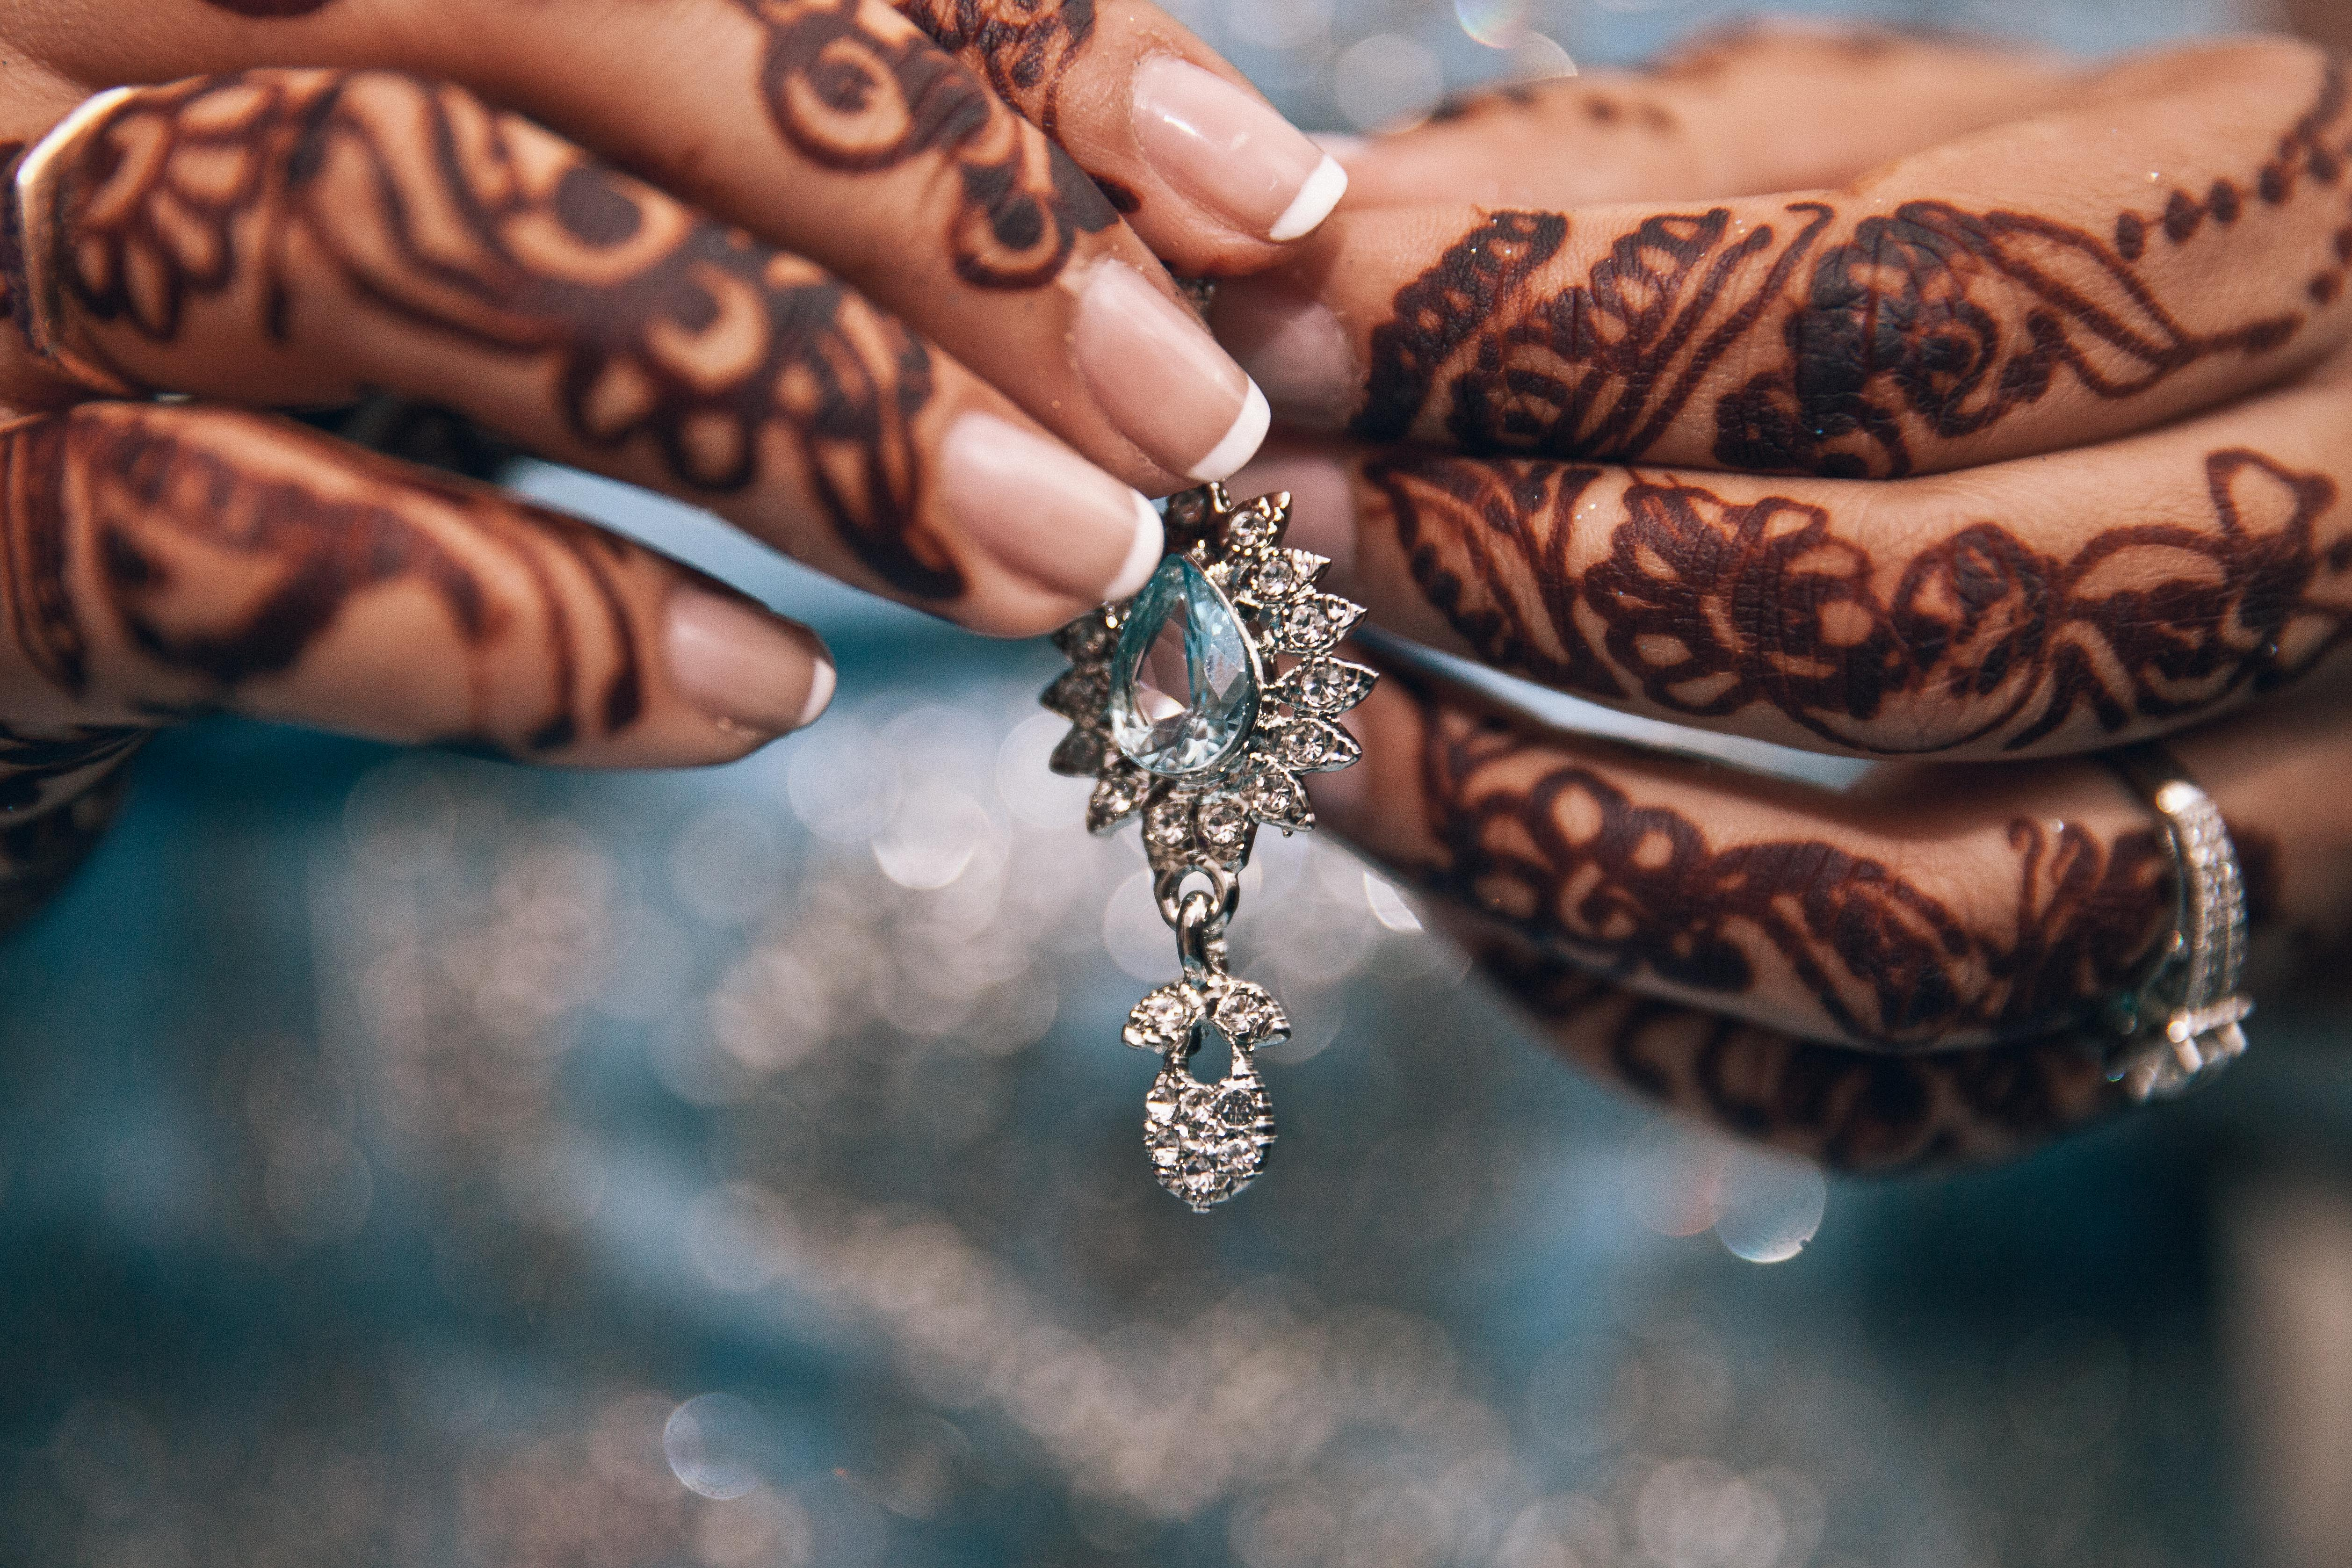 Hands with mendhi on them holding blue drop earring